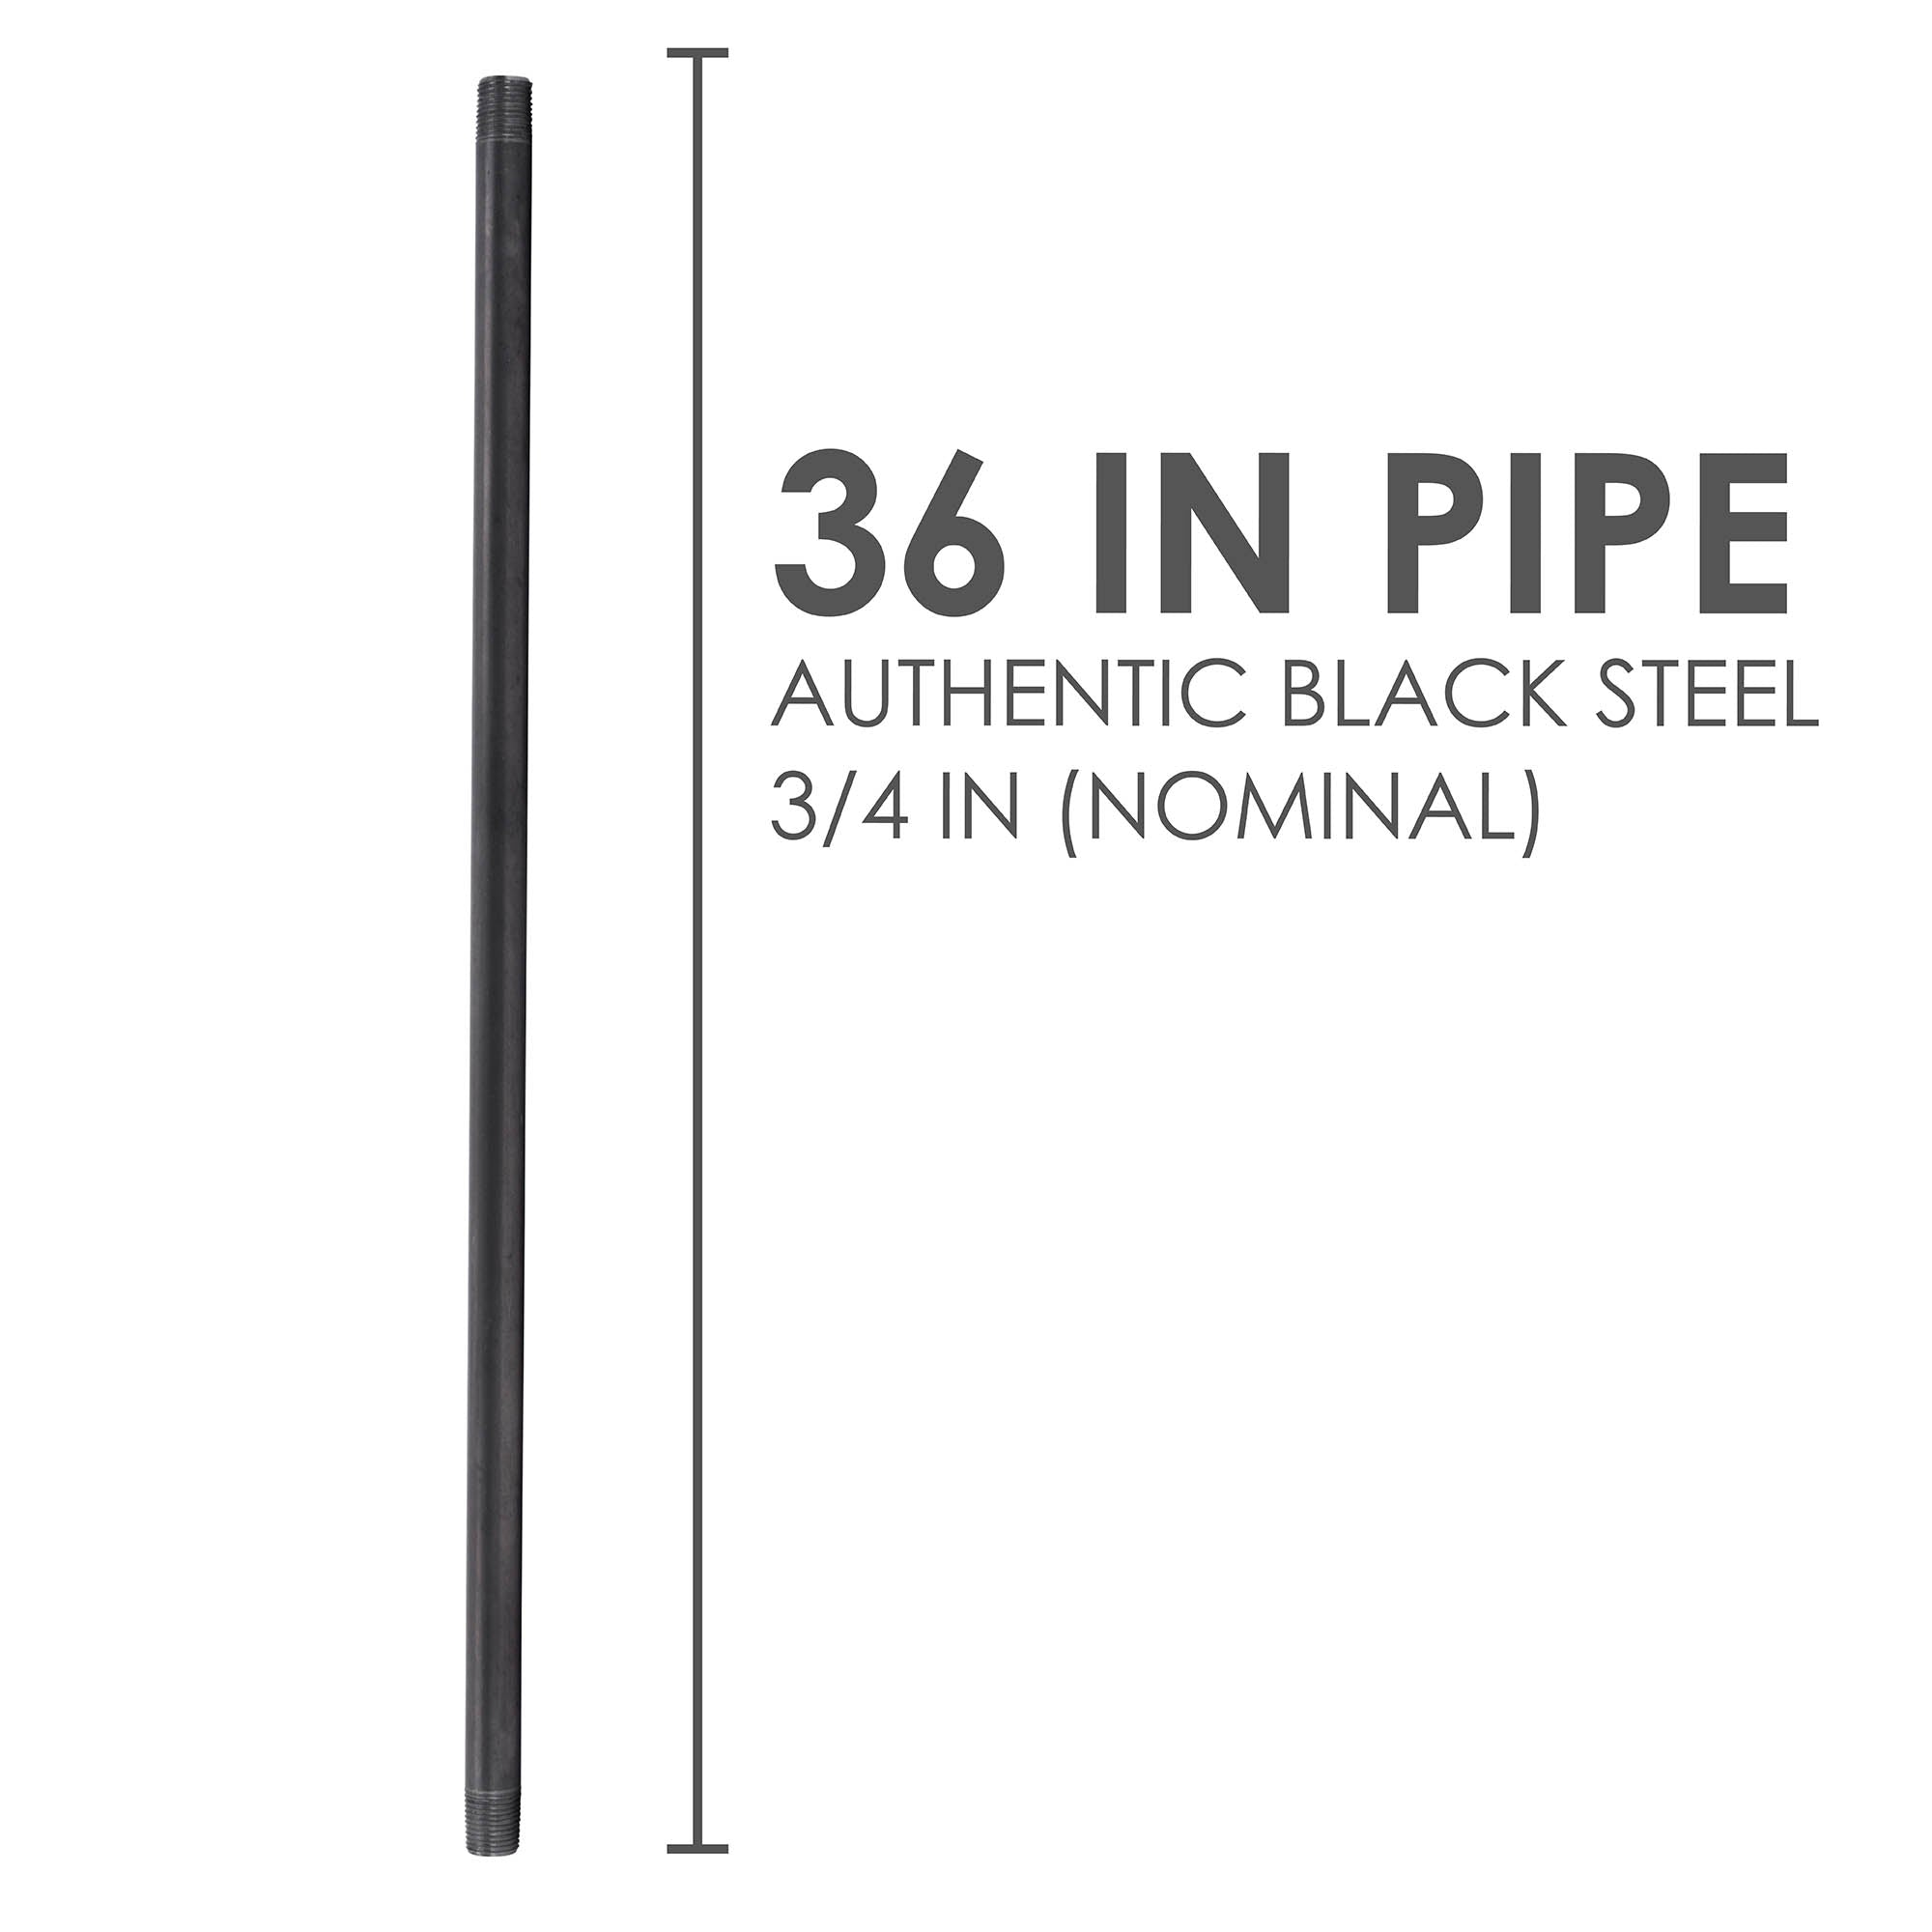 3/4 In X 36 In Black Pipe - Pipe Decor